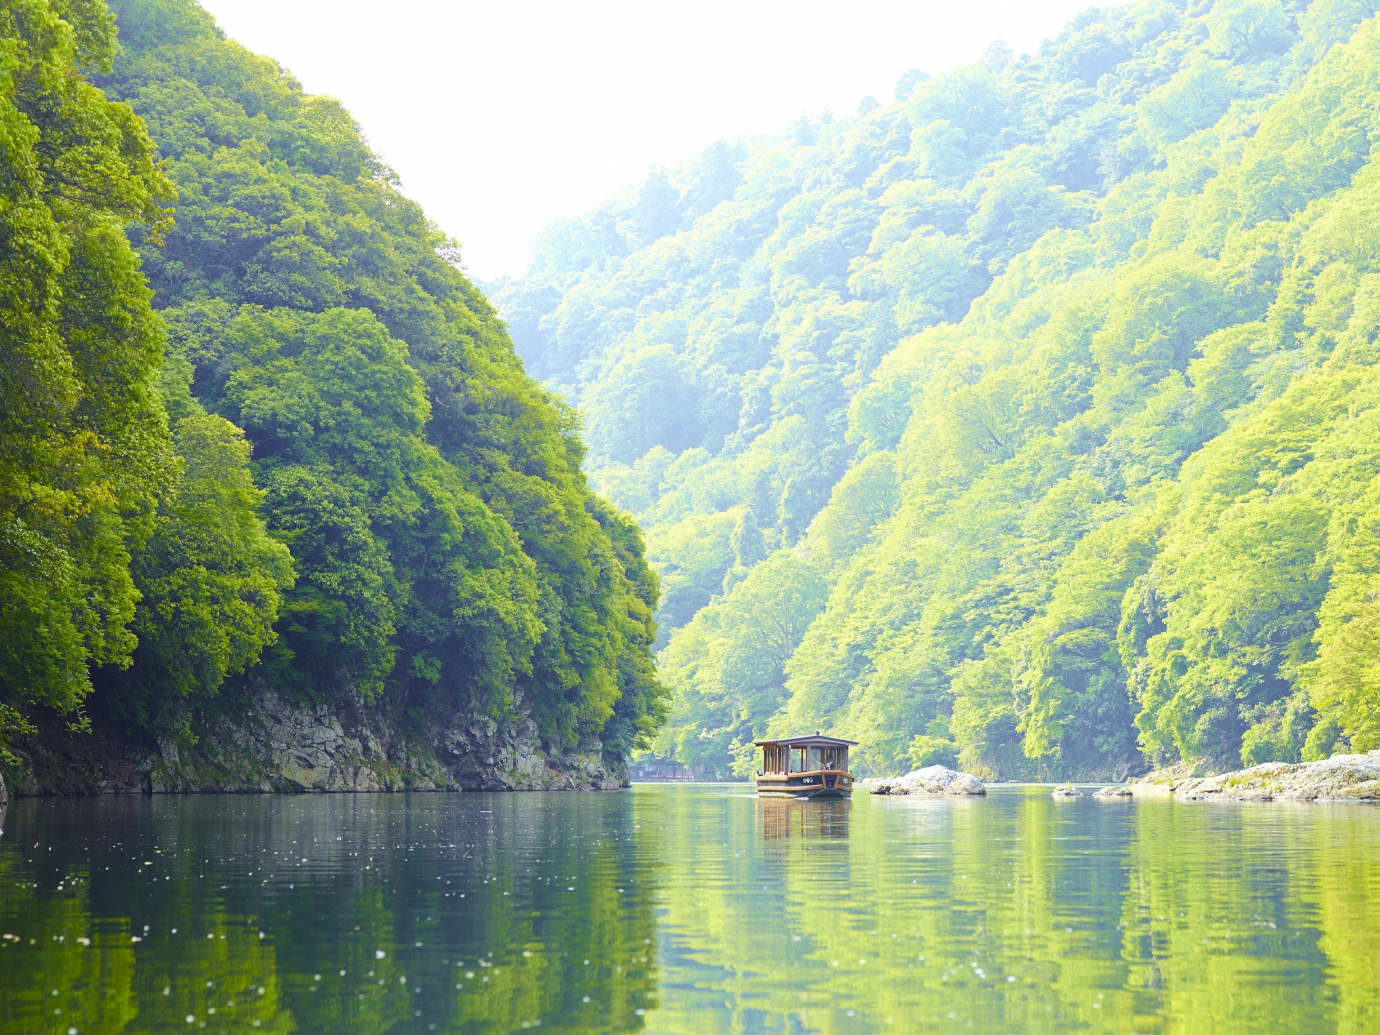 Lush green trees surrounding water way with a boat riding down